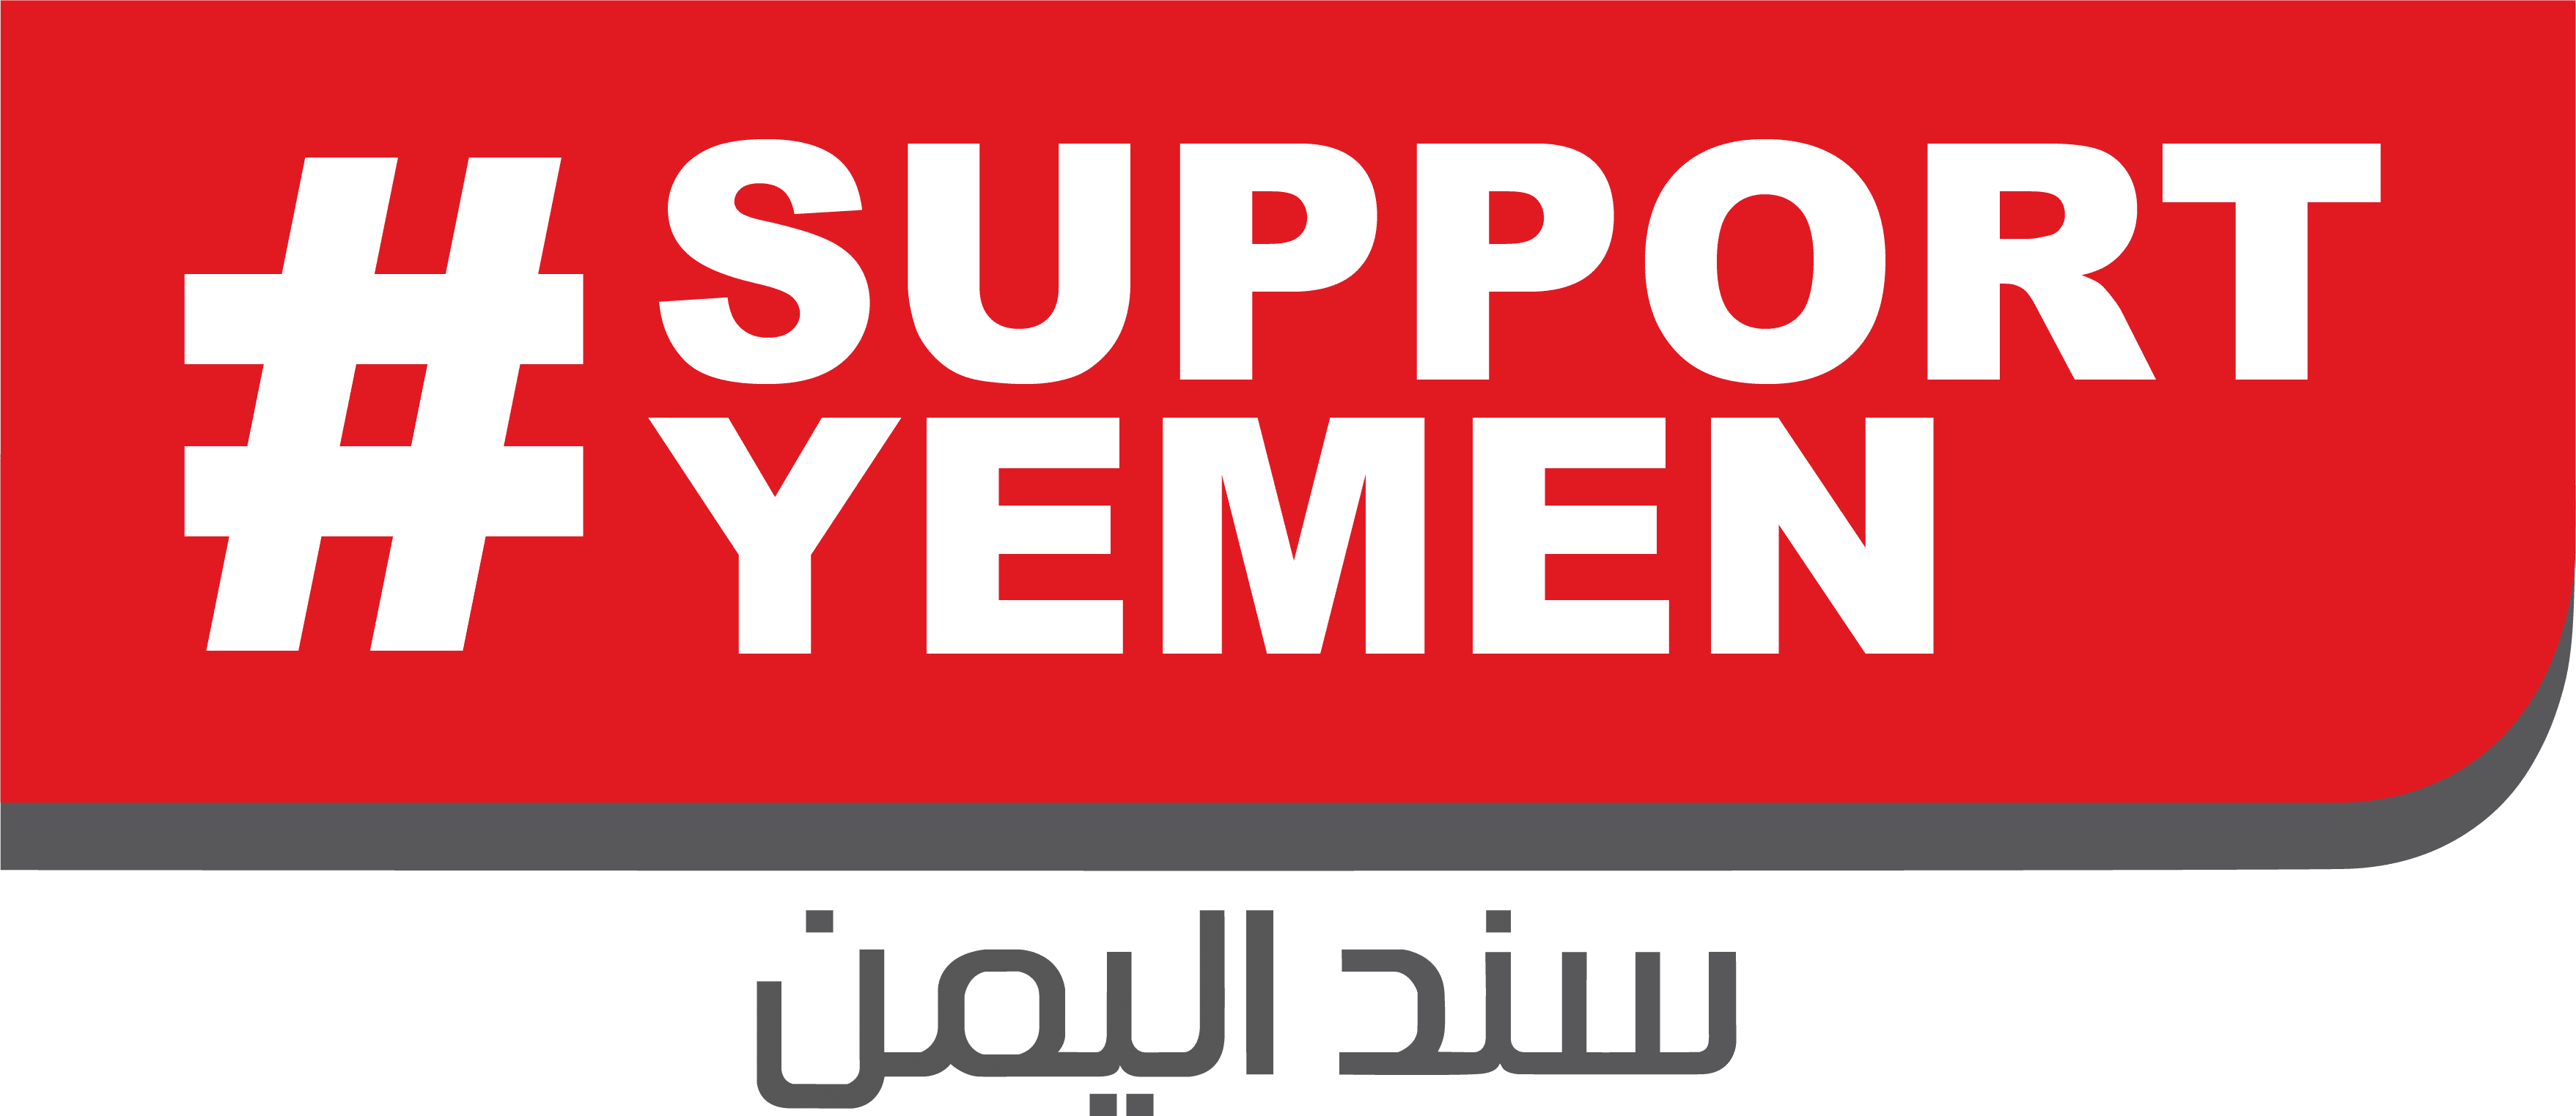 #SupportYemen